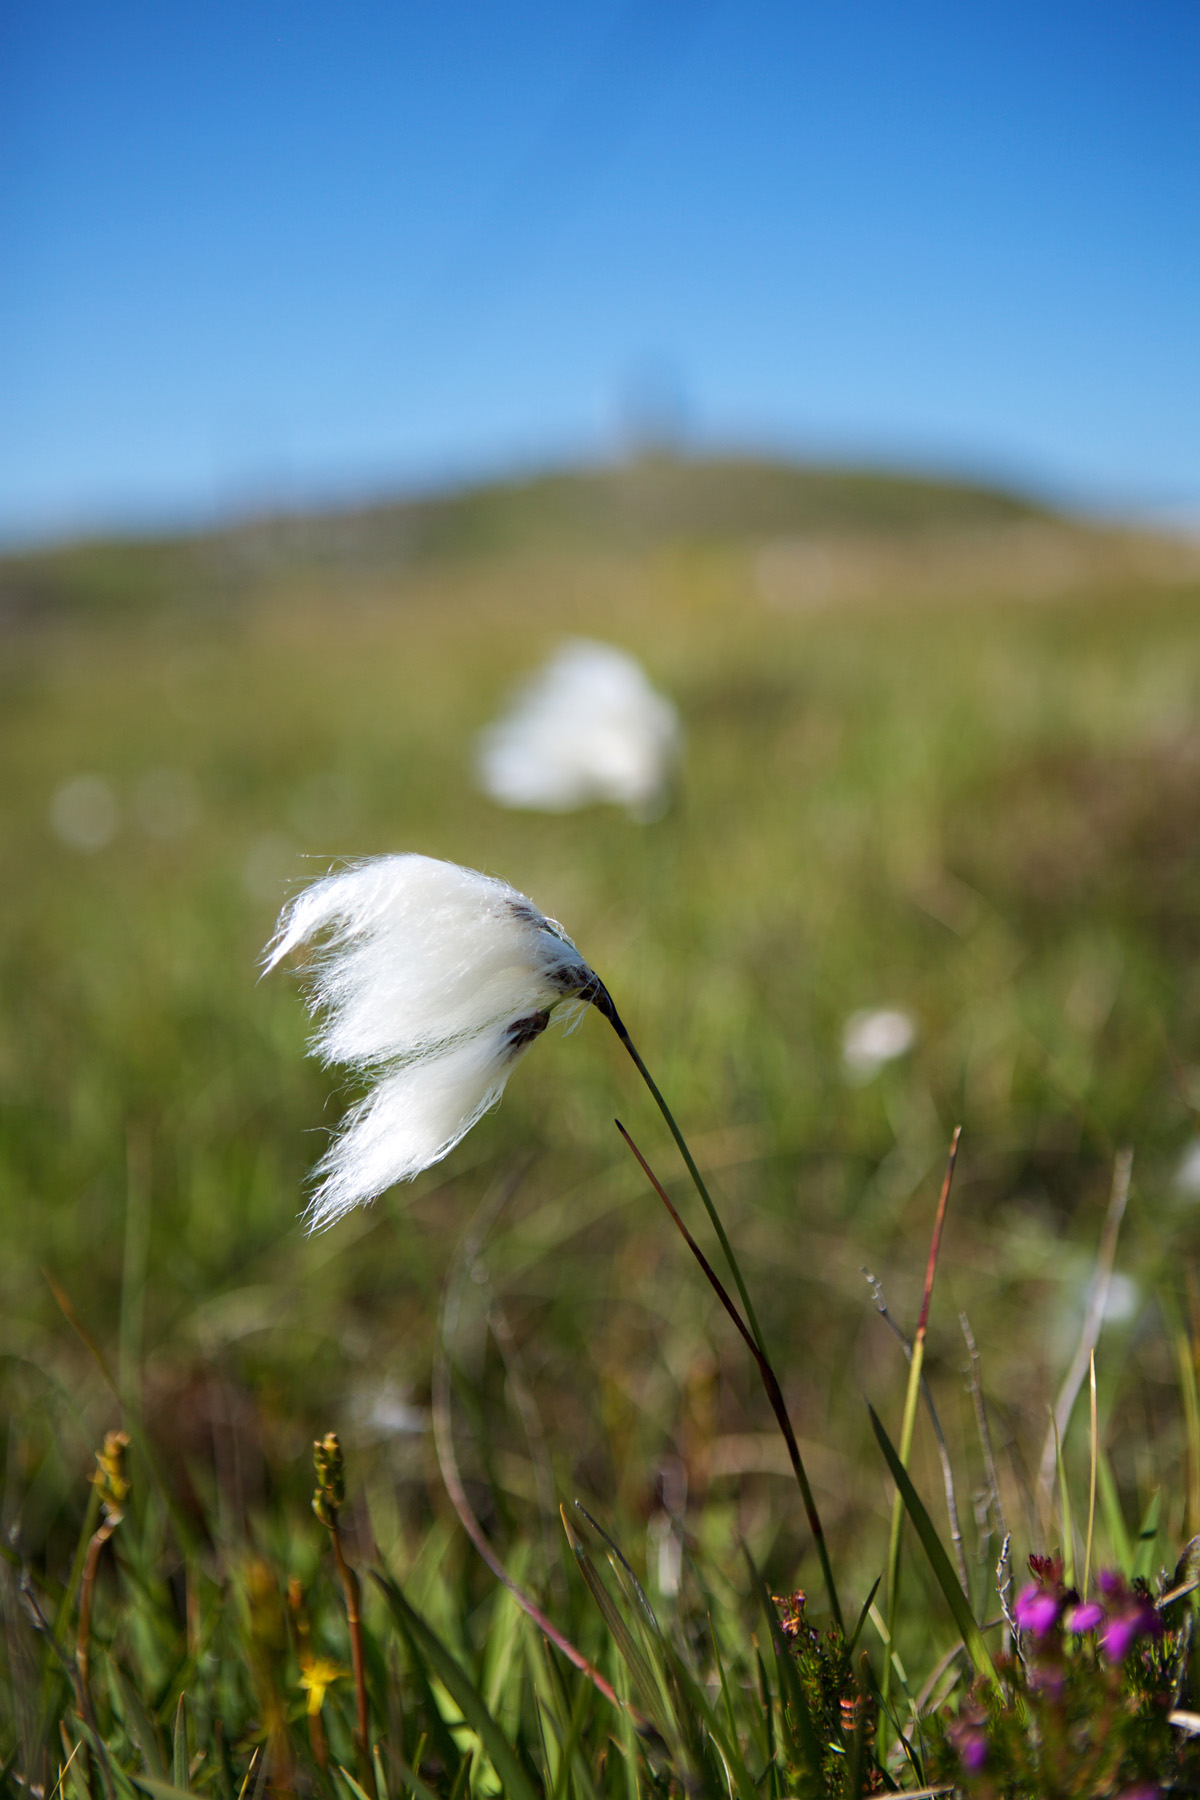 Bog cotton with a distant view of Banba's Crown, Malin head where your guide will guide you through local flora and fauna that was part of local food culture